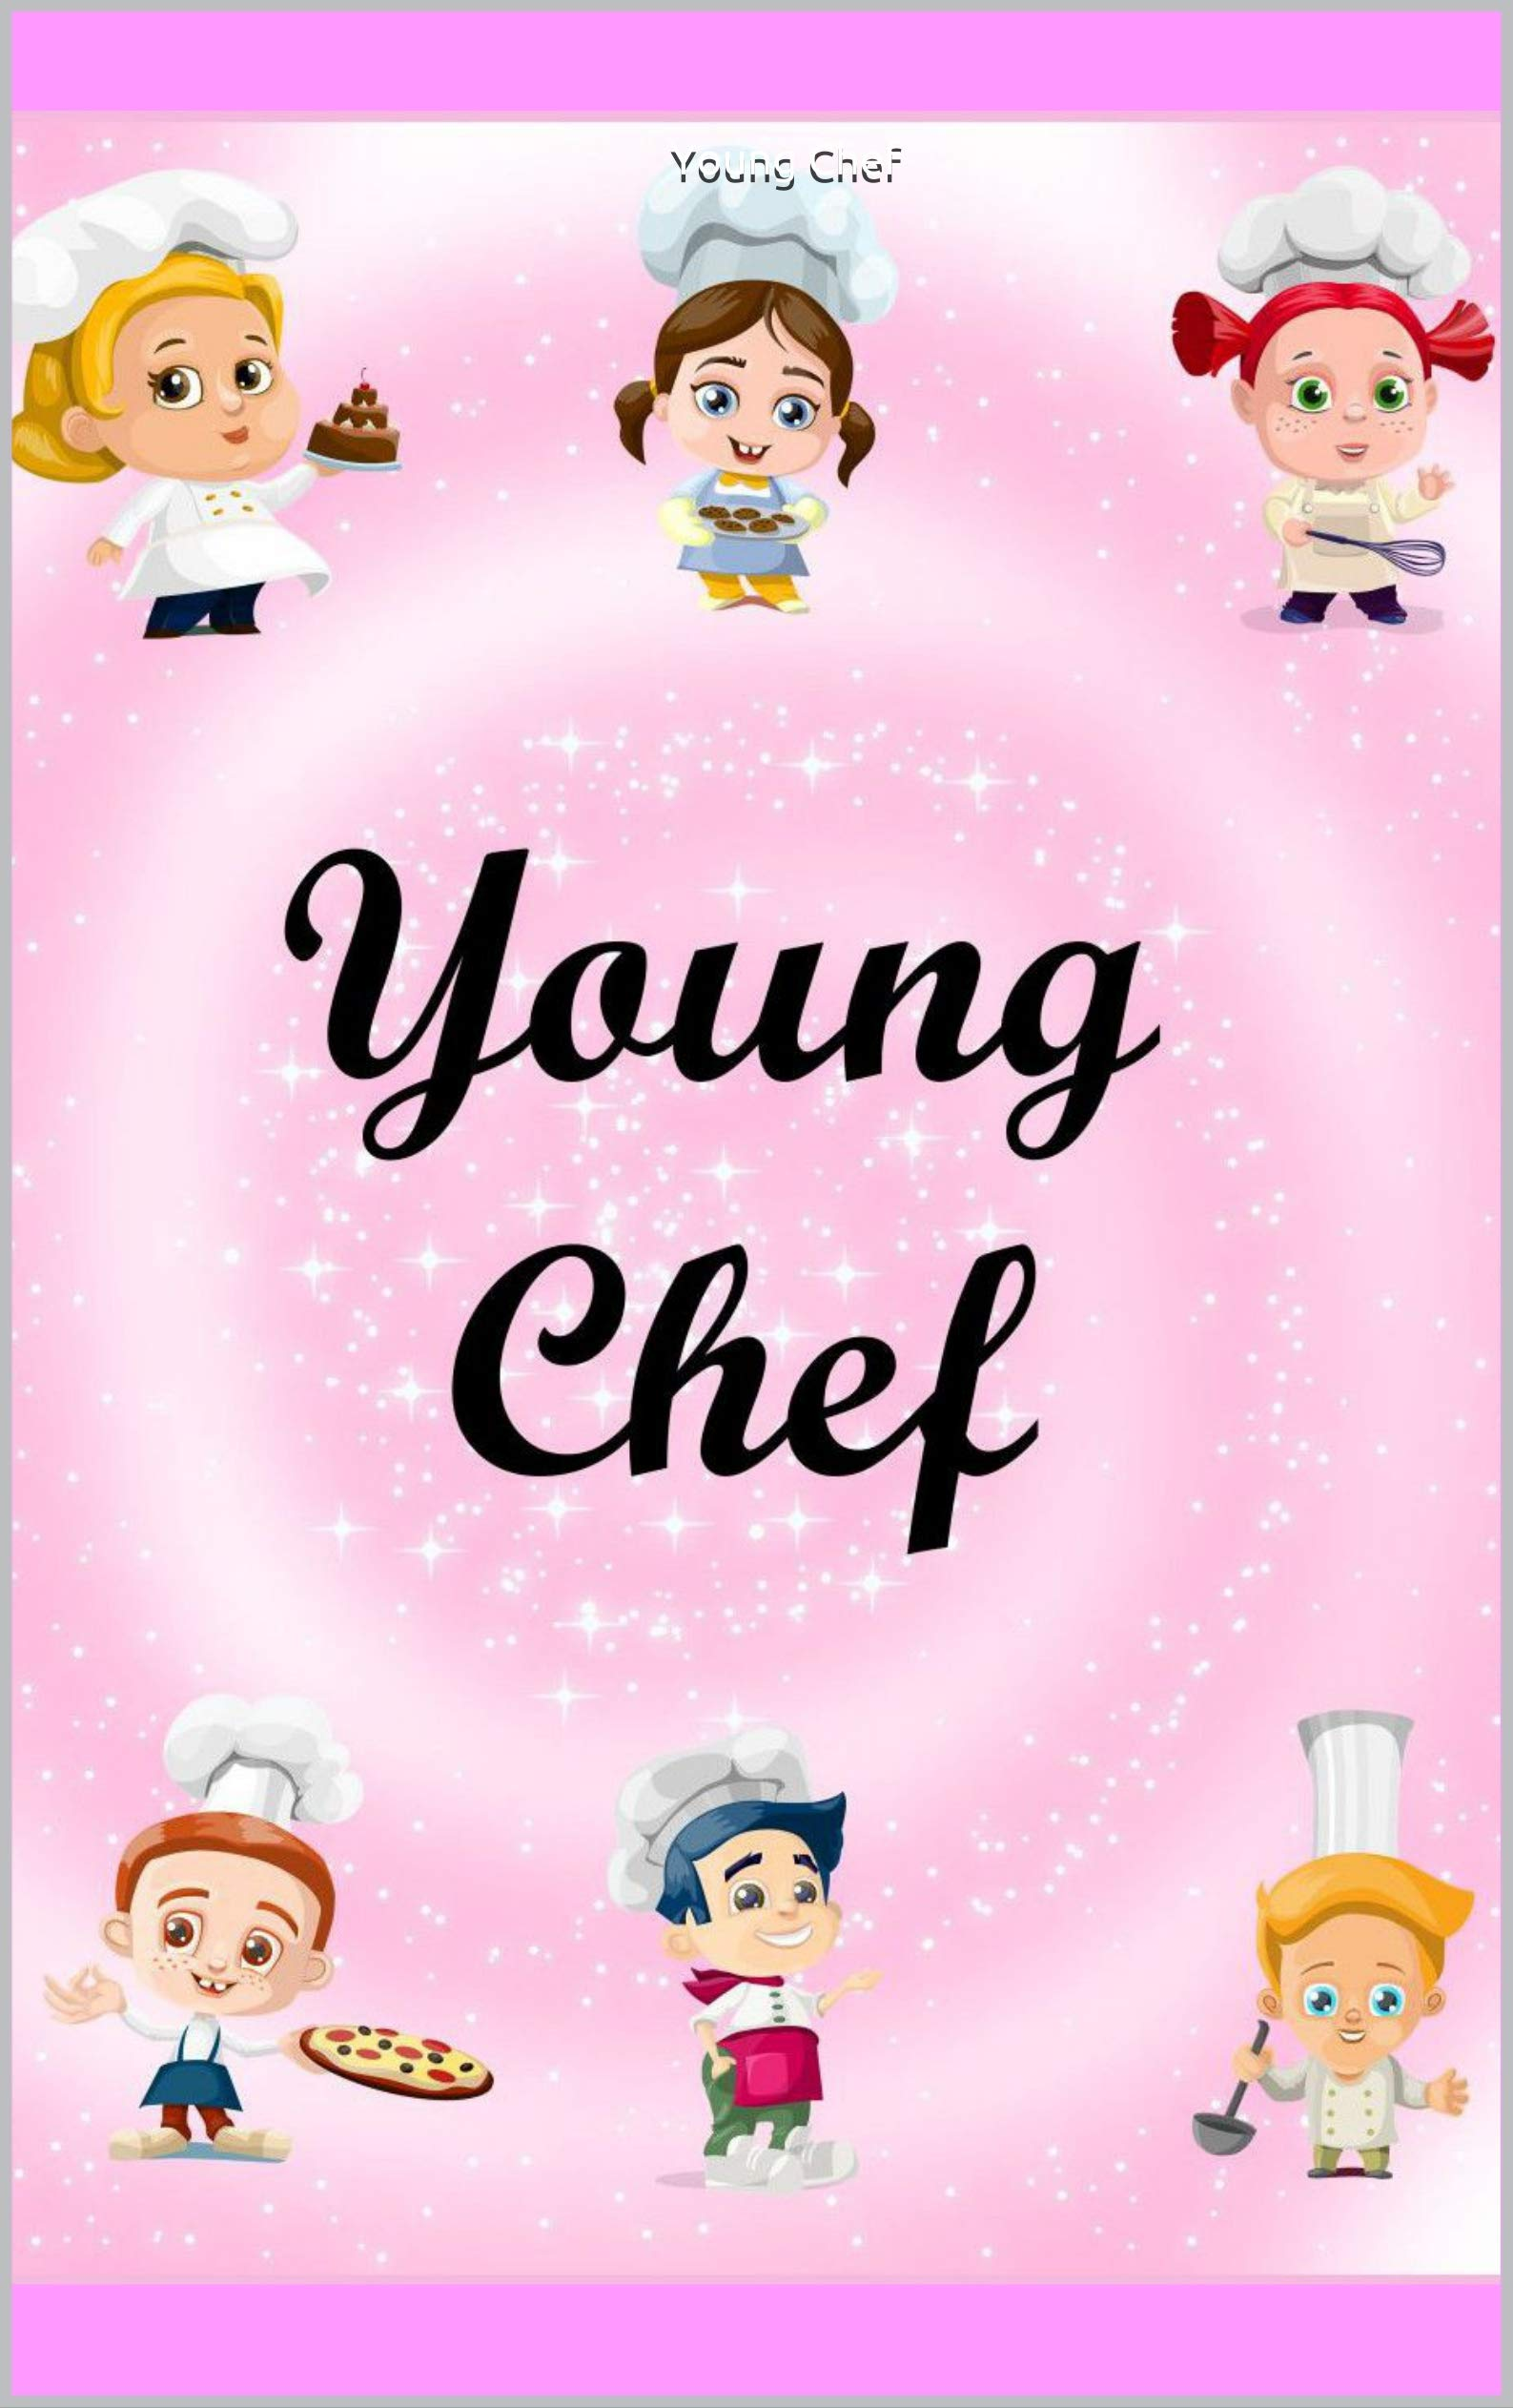 Young Chef : Recipes Notebook & Coloring Book(8.5 x 11 inches) • Recipe Book for Kids • Cooking Journal • Kids Cookbook Gift • Blank Recipe Book Paperback • Desserts Coloring Book for Children